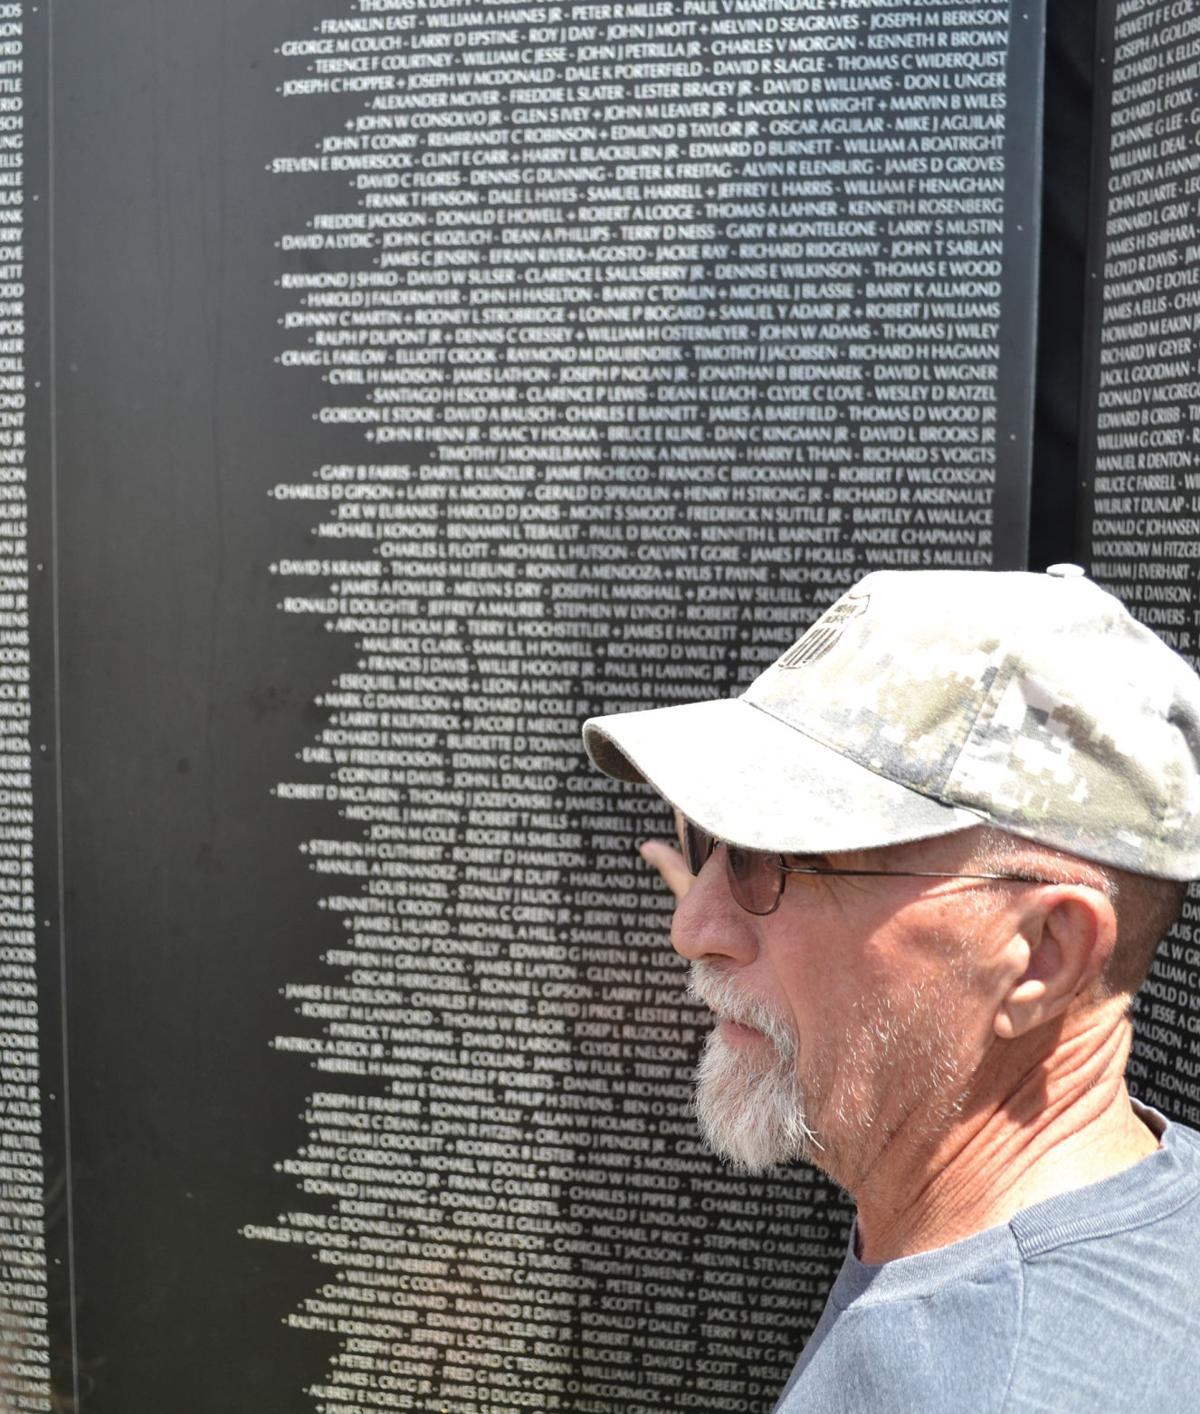 Vietnam Memorial Wall drew thousands over the weekend